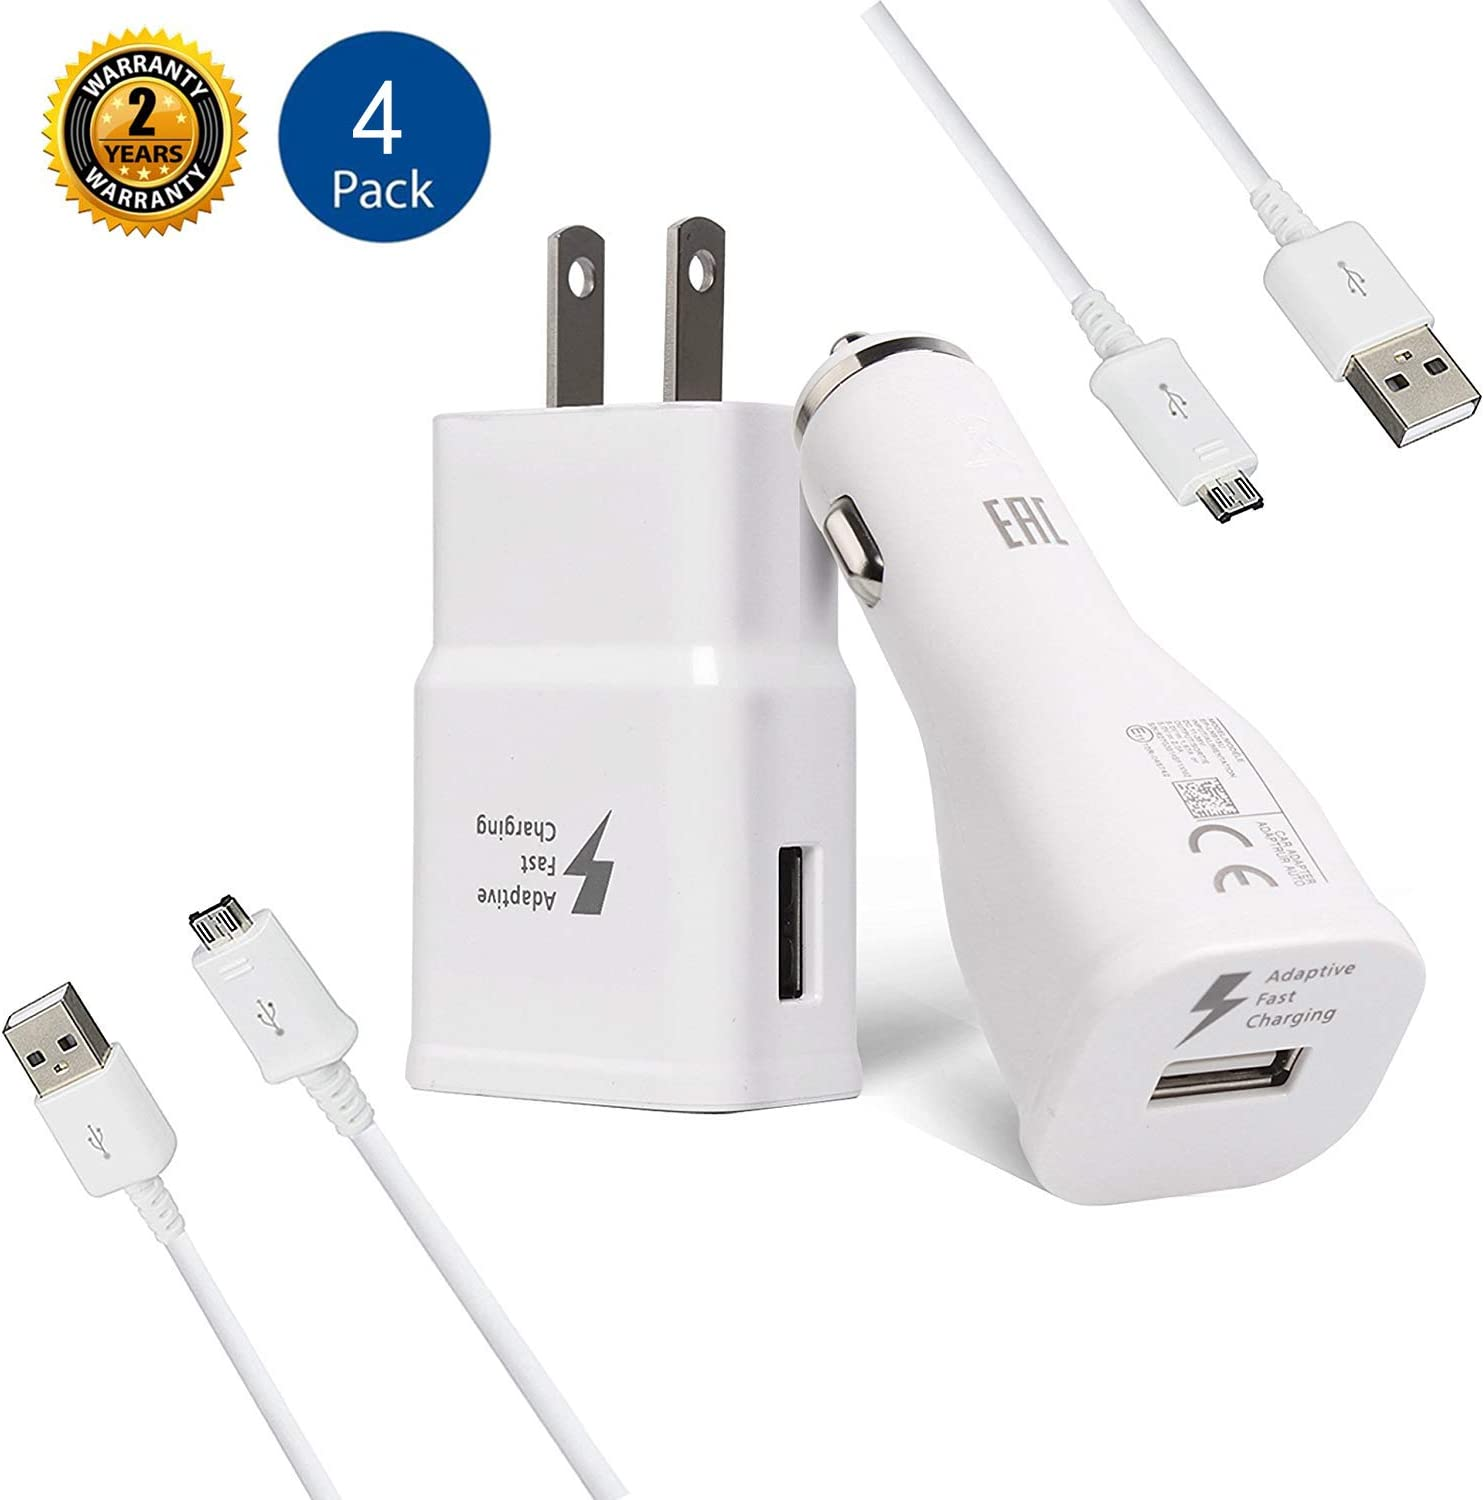 Samsung Adaptive Fast Charger Kit-LaoFas Fast Charging Adapter Travel Charger Compatible with Samsung Galaxy S7 Edge / S6 / Note5 / Note 4/ S3 (Wall Charger + Car Charger + 2 x Micro USB Cable)(White)